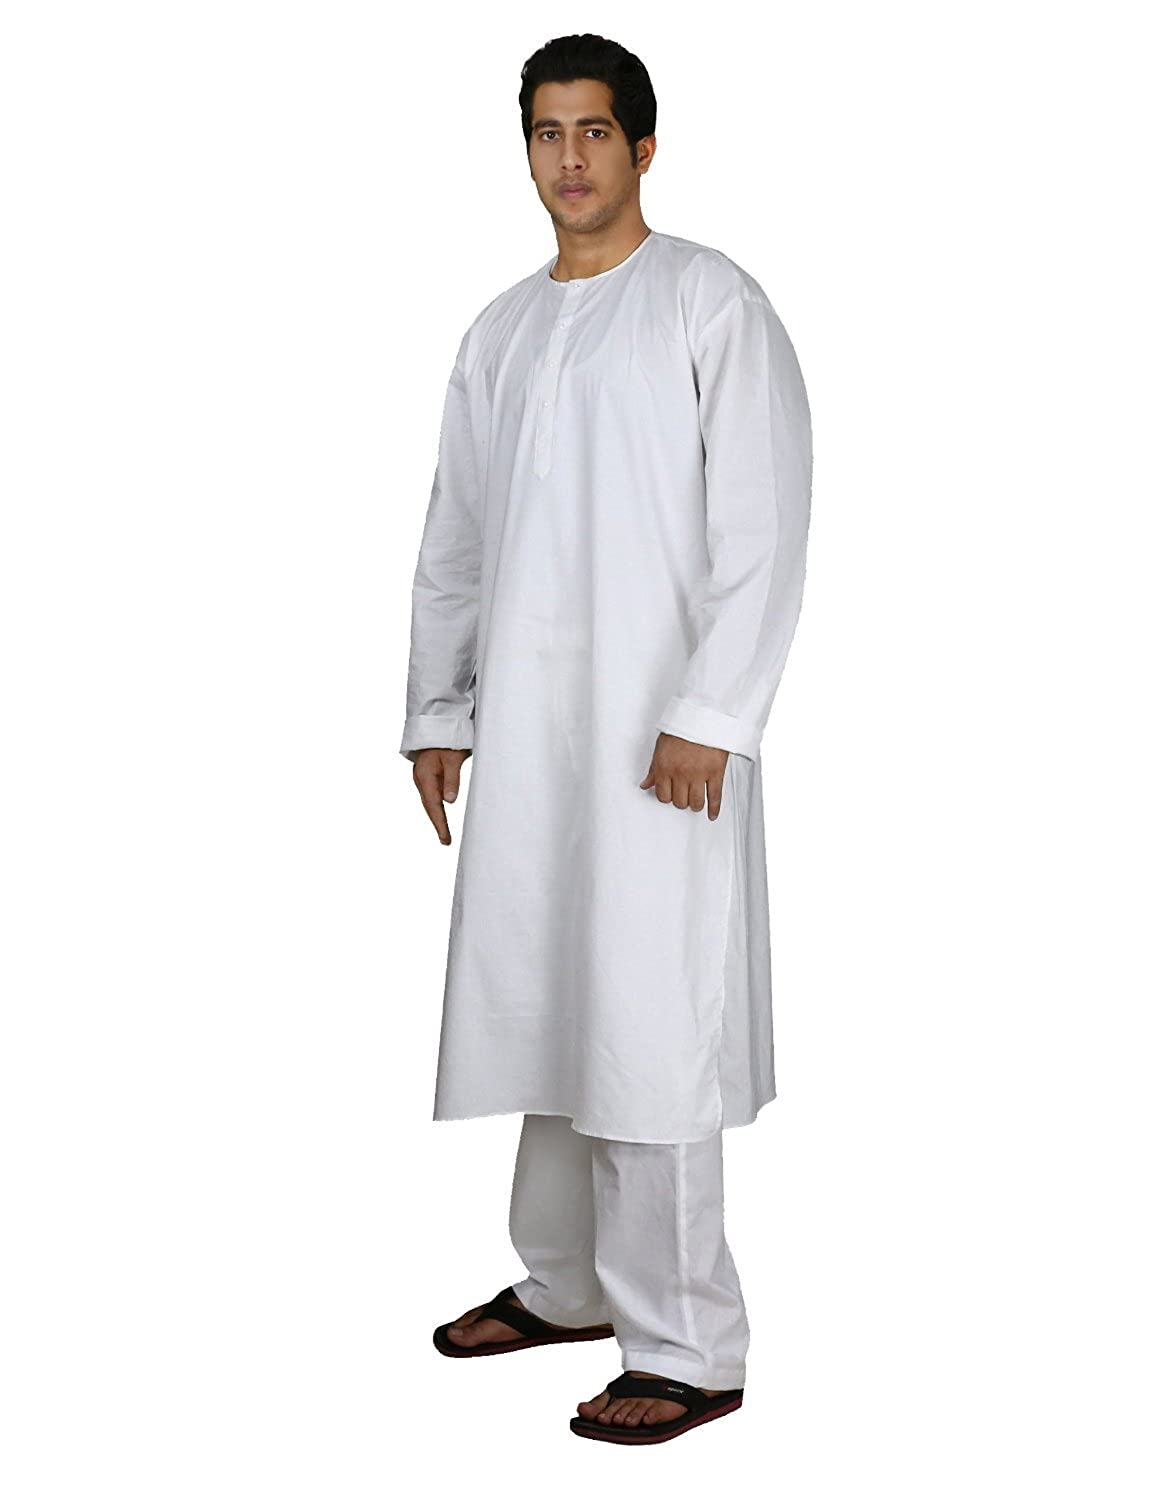 Amazon.com: Handmade White Cotton Men's Kurta Pajamas Set ...